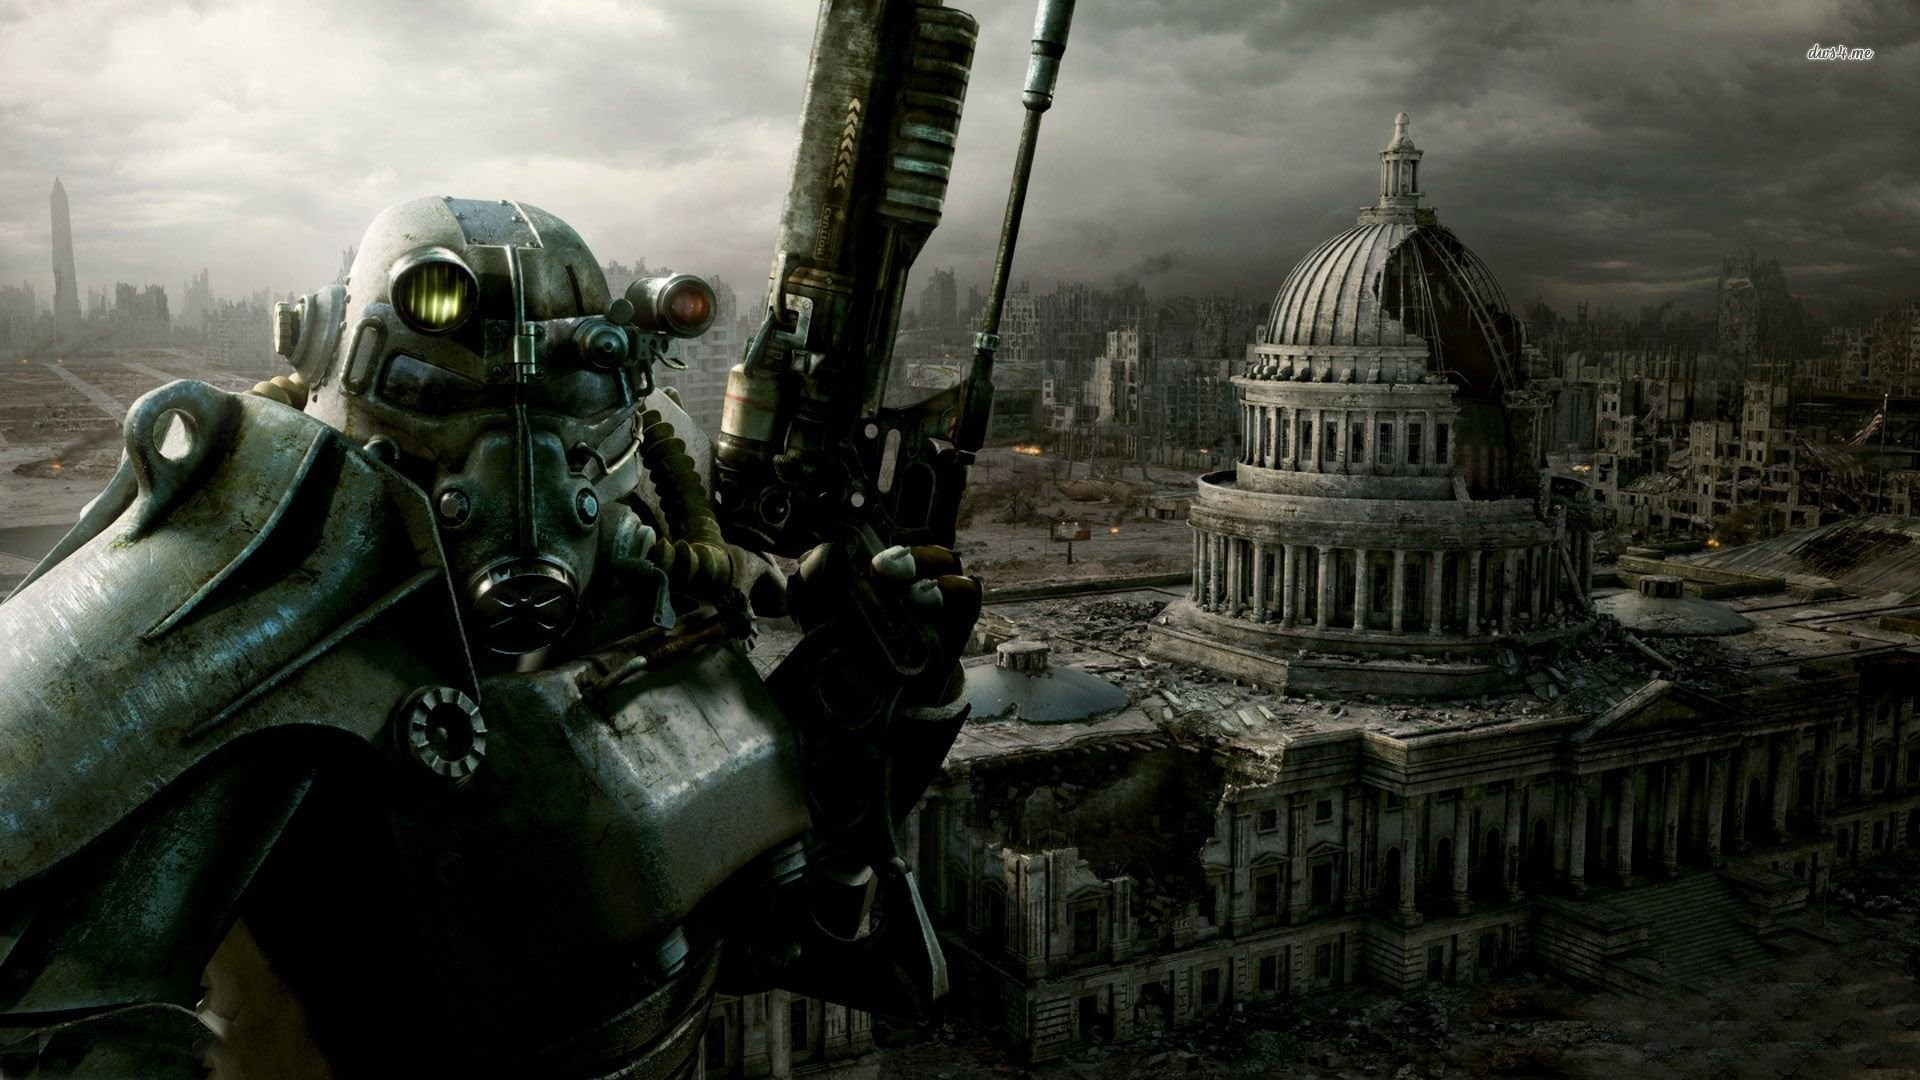 1920x1080 Fallout 3 Desktop Background